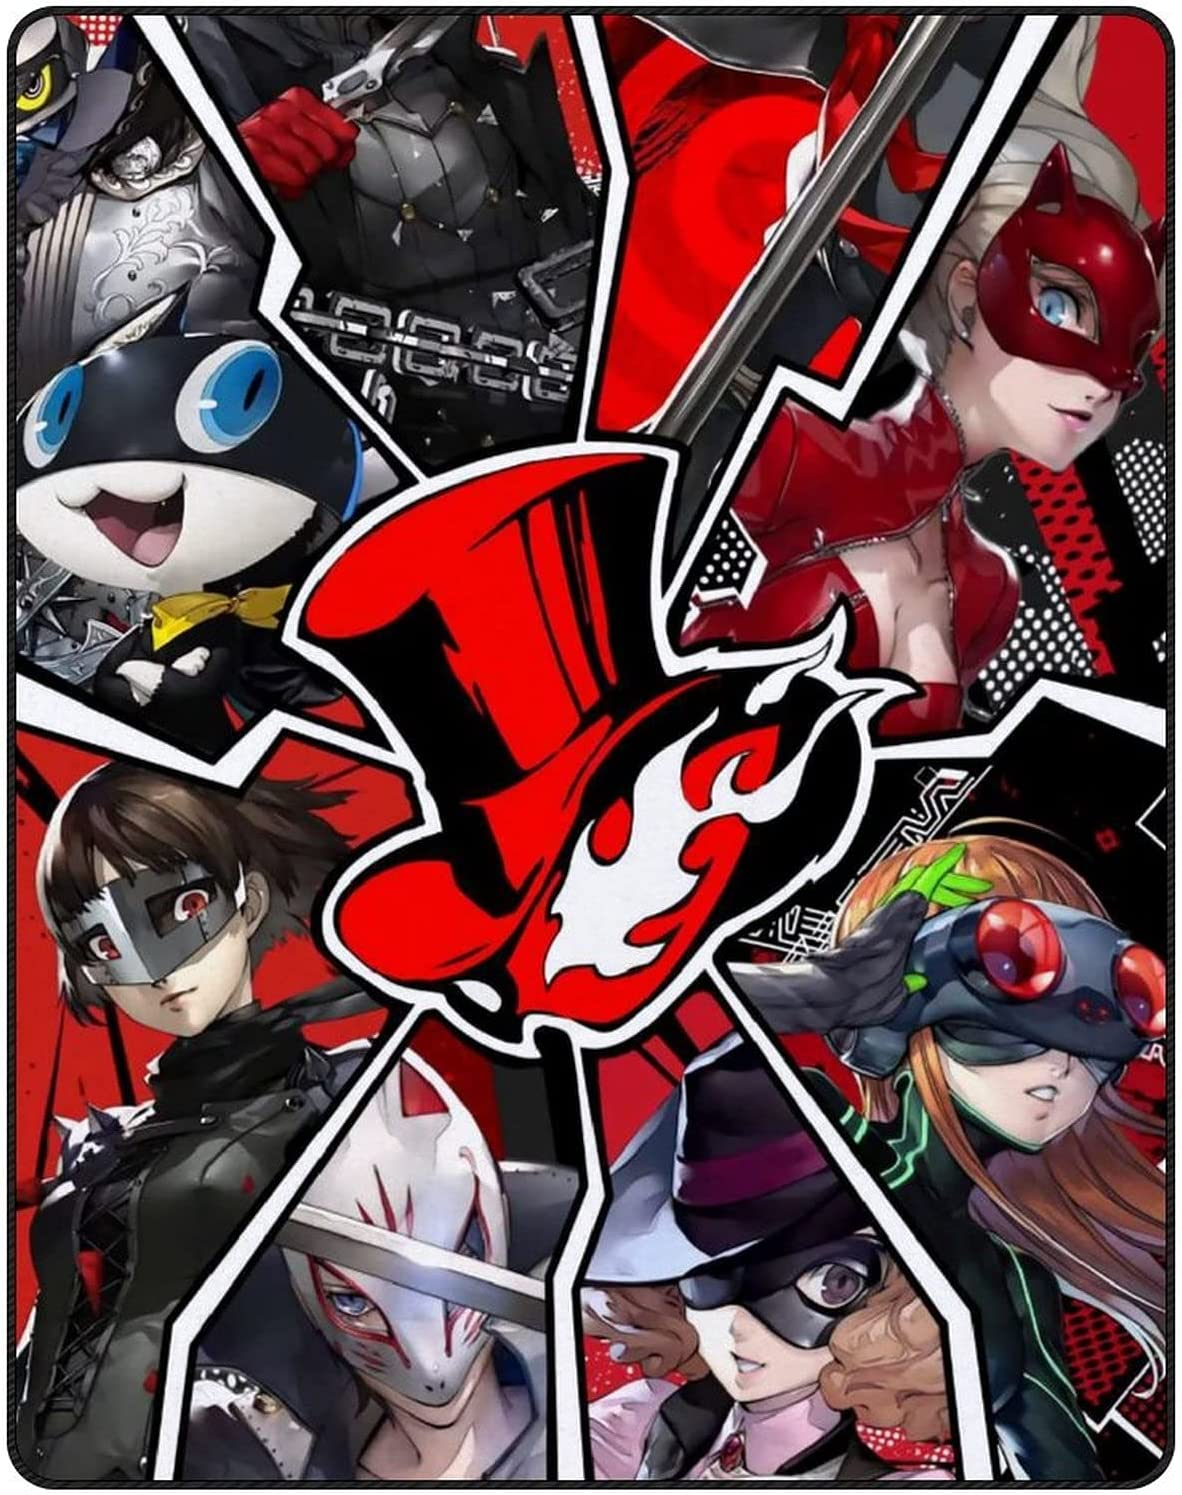 ZFSLYTO Limited time sale Persona 5 Ultra-Thin Soft 3D Blanket Printed Per Ranking TOP5 Fashion